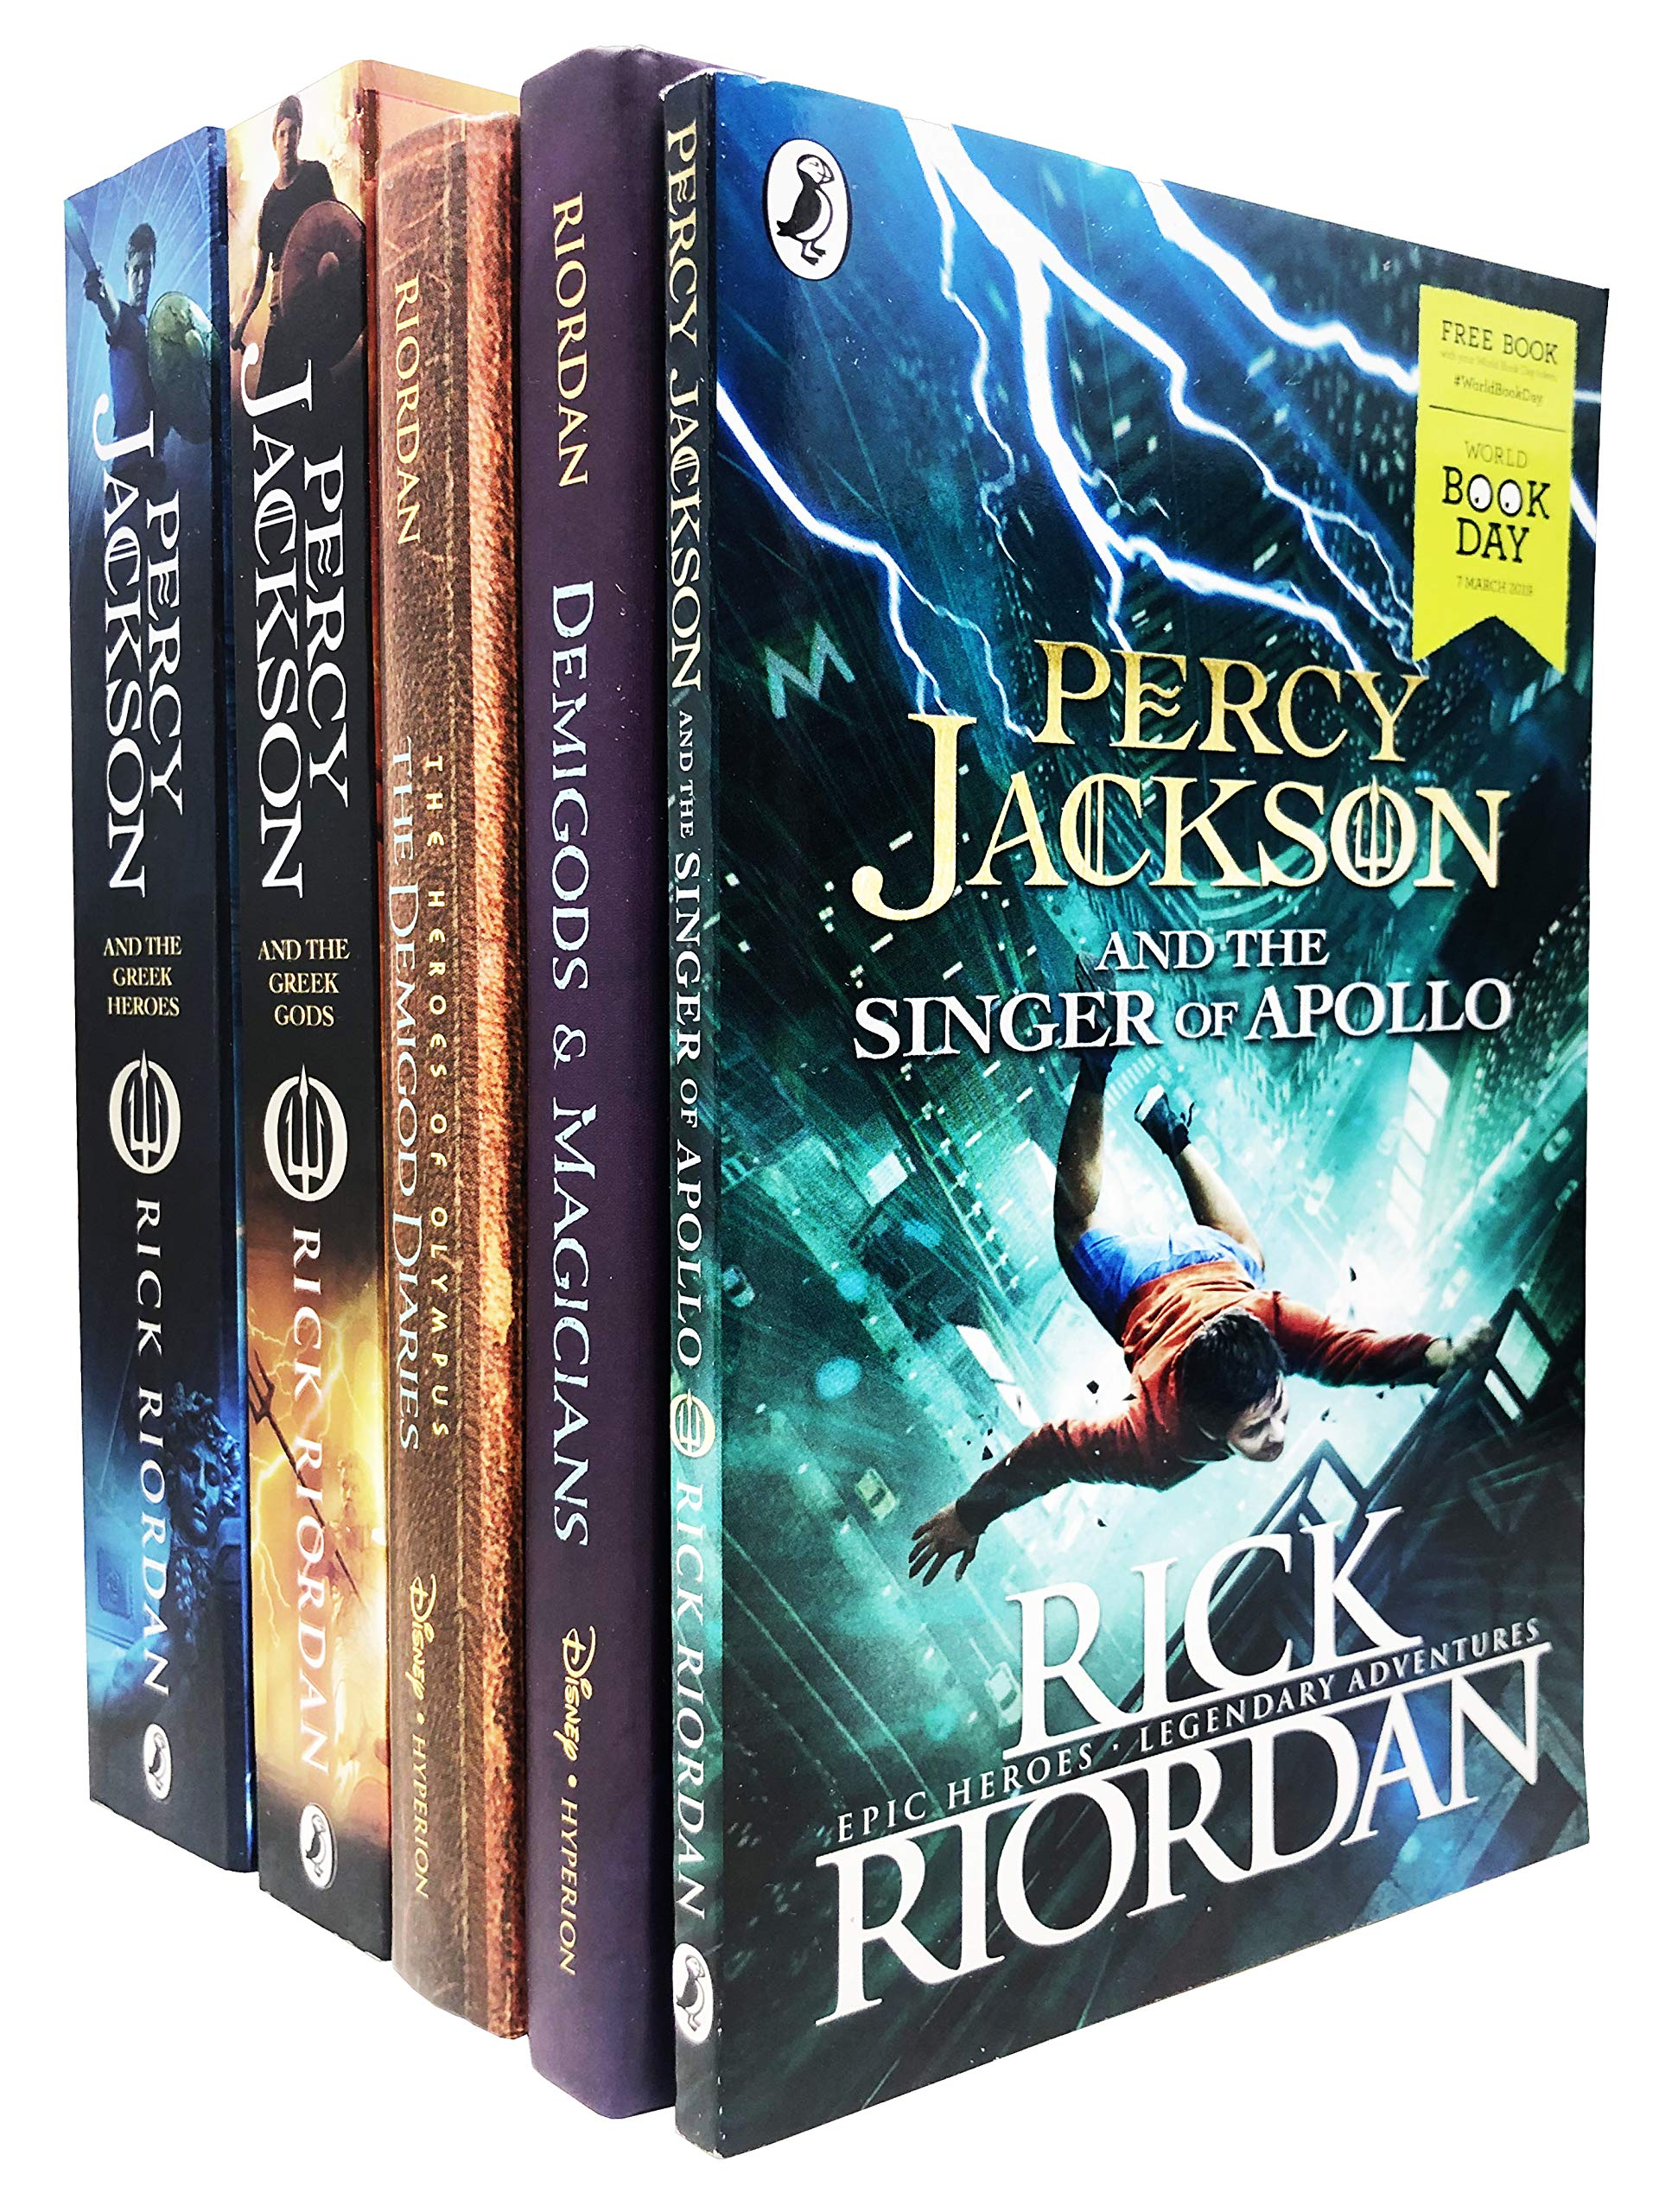 Rick Riordan Collection 5 Books Set - Percy Jackson and The Greek Heroes, The Greek Gods, The Demigod Diaries, Demigods and Magicians, Singer of Apollo WBD 2019